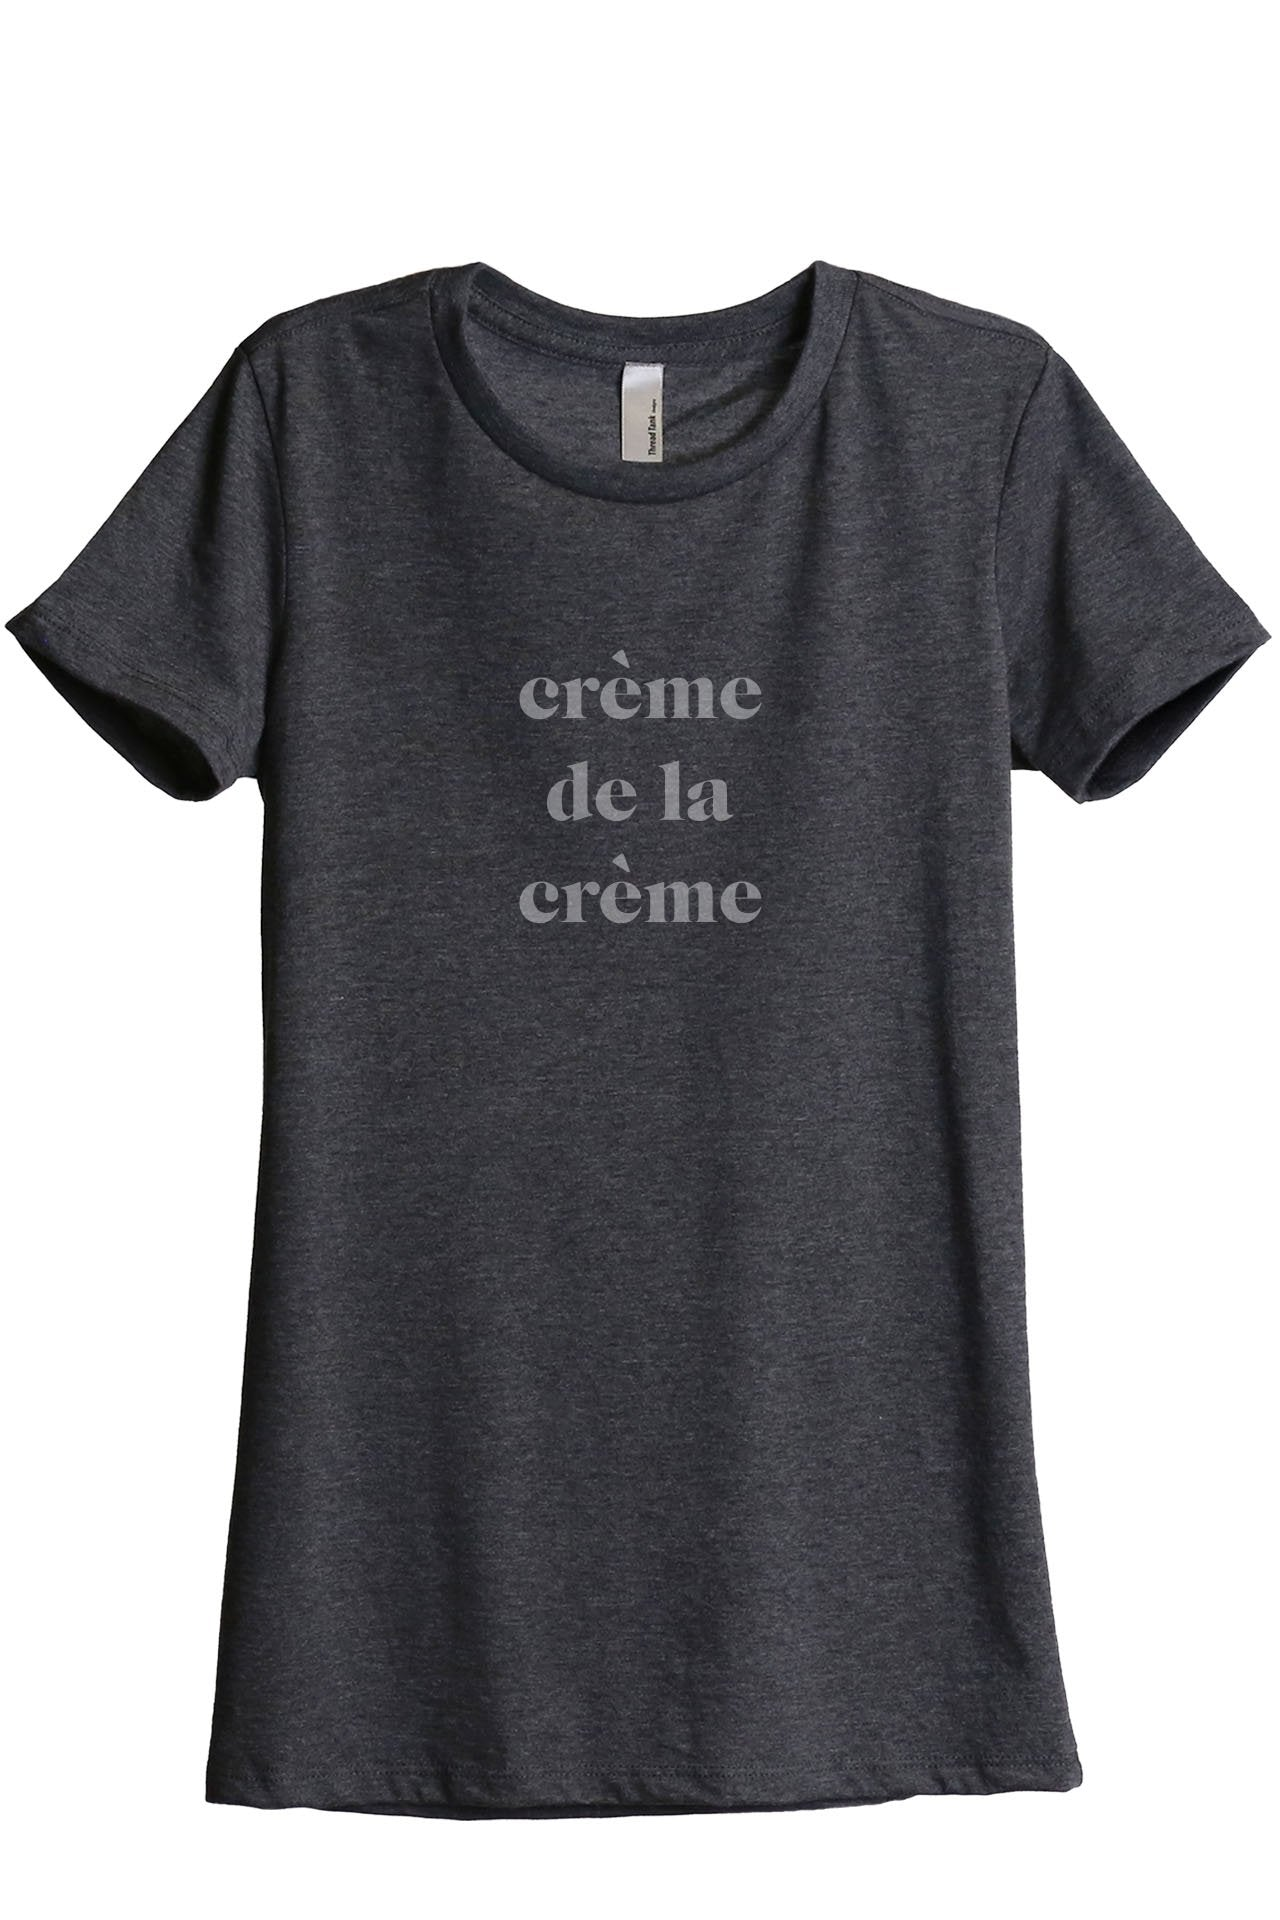 Creme De La Creme - Thread Tank | Stories You Can Wear | T-Shirts, Tank Tops and Sweatshirts